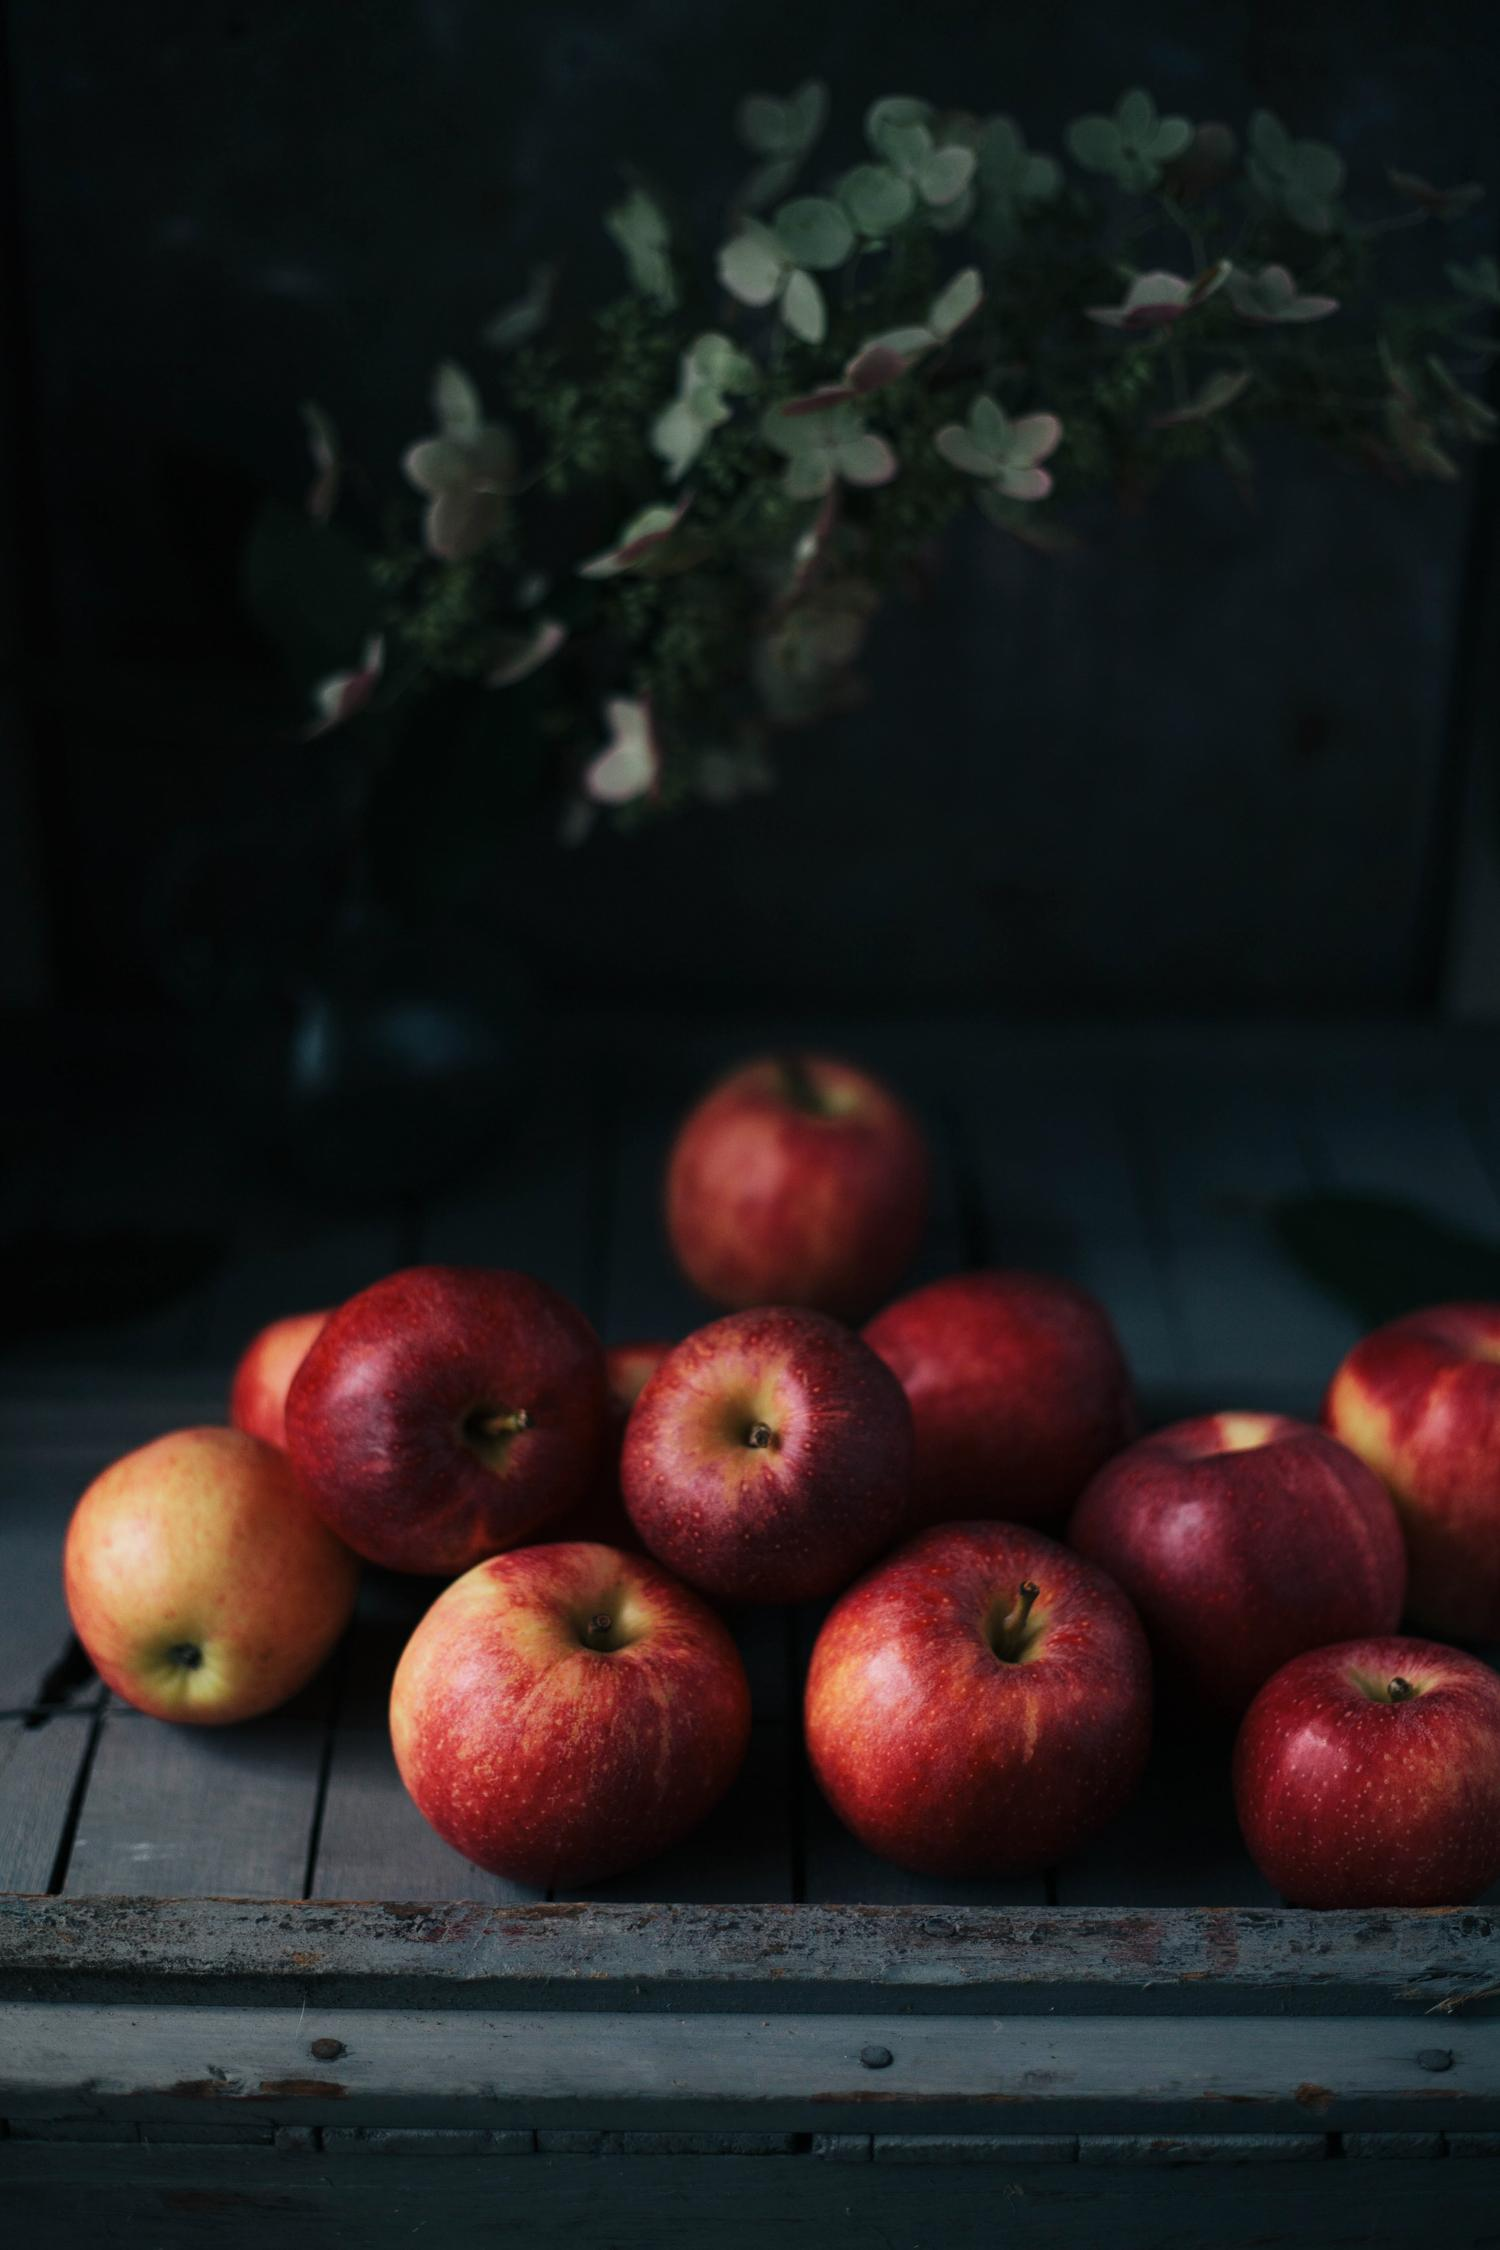 Apples and tomatillos - image 1 - student project